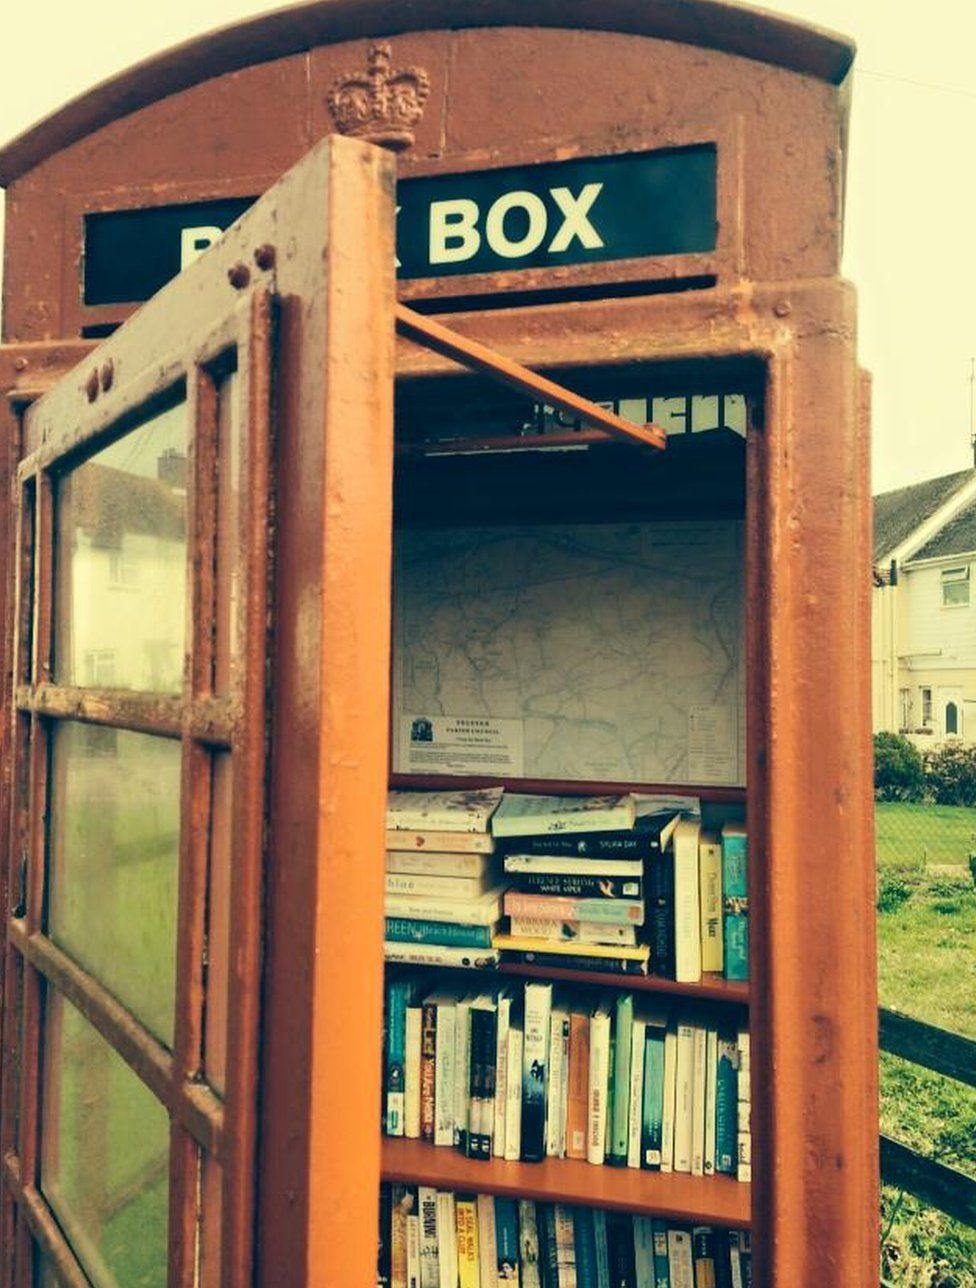 A phone box used as a library in Felsted, Essex